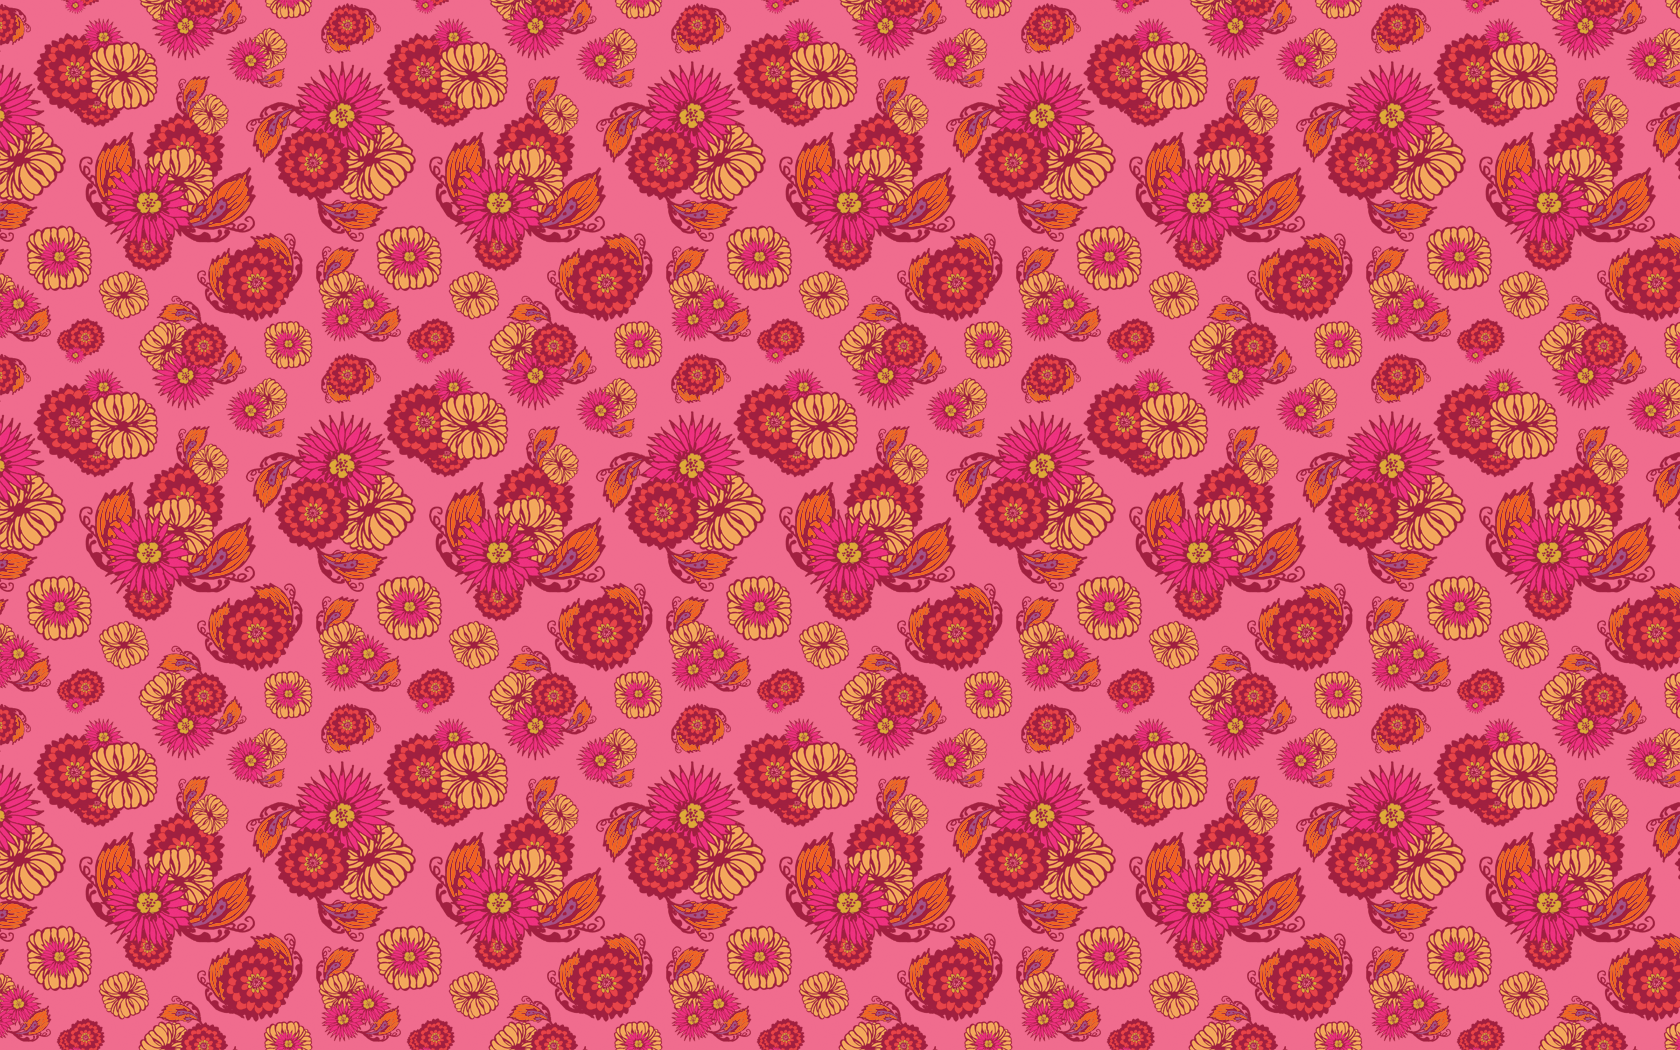 Free Patterned Desktop Wallpaper | kathrineborup